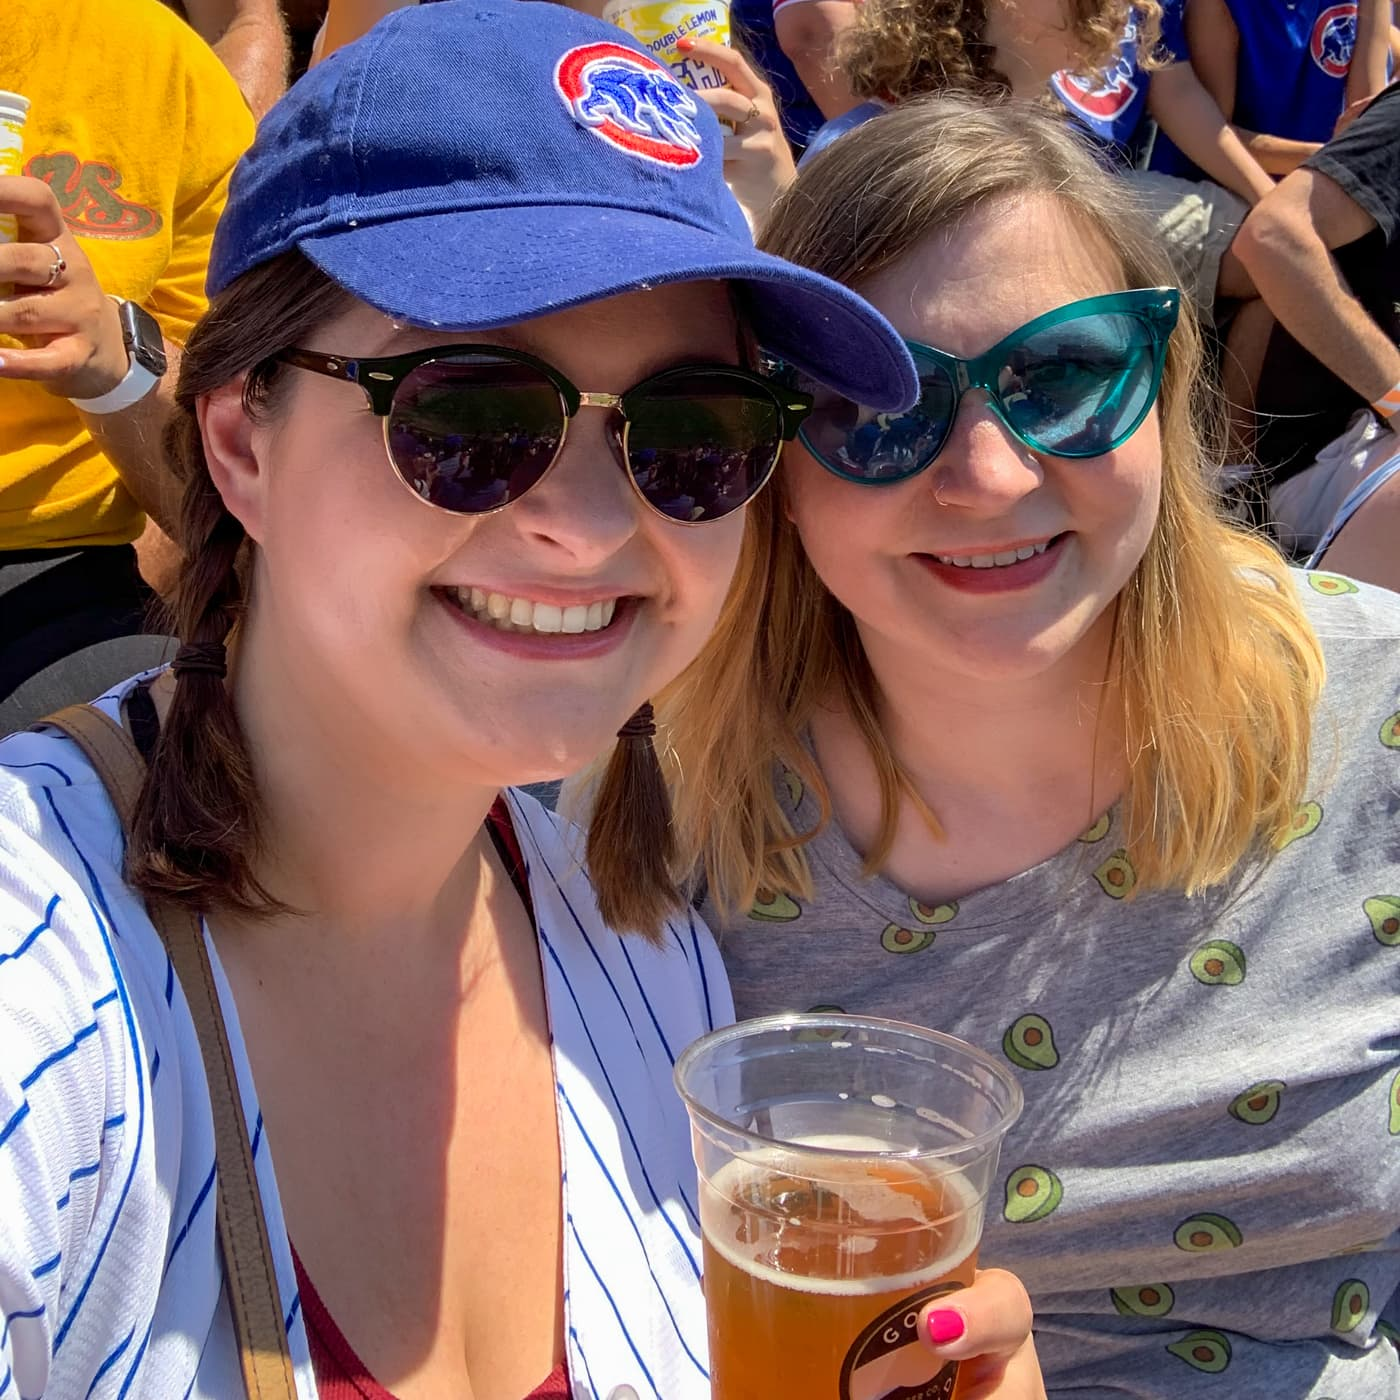 Cubs game with Amanda. No, I do not own a Cubs shirt. Avocados work, right?